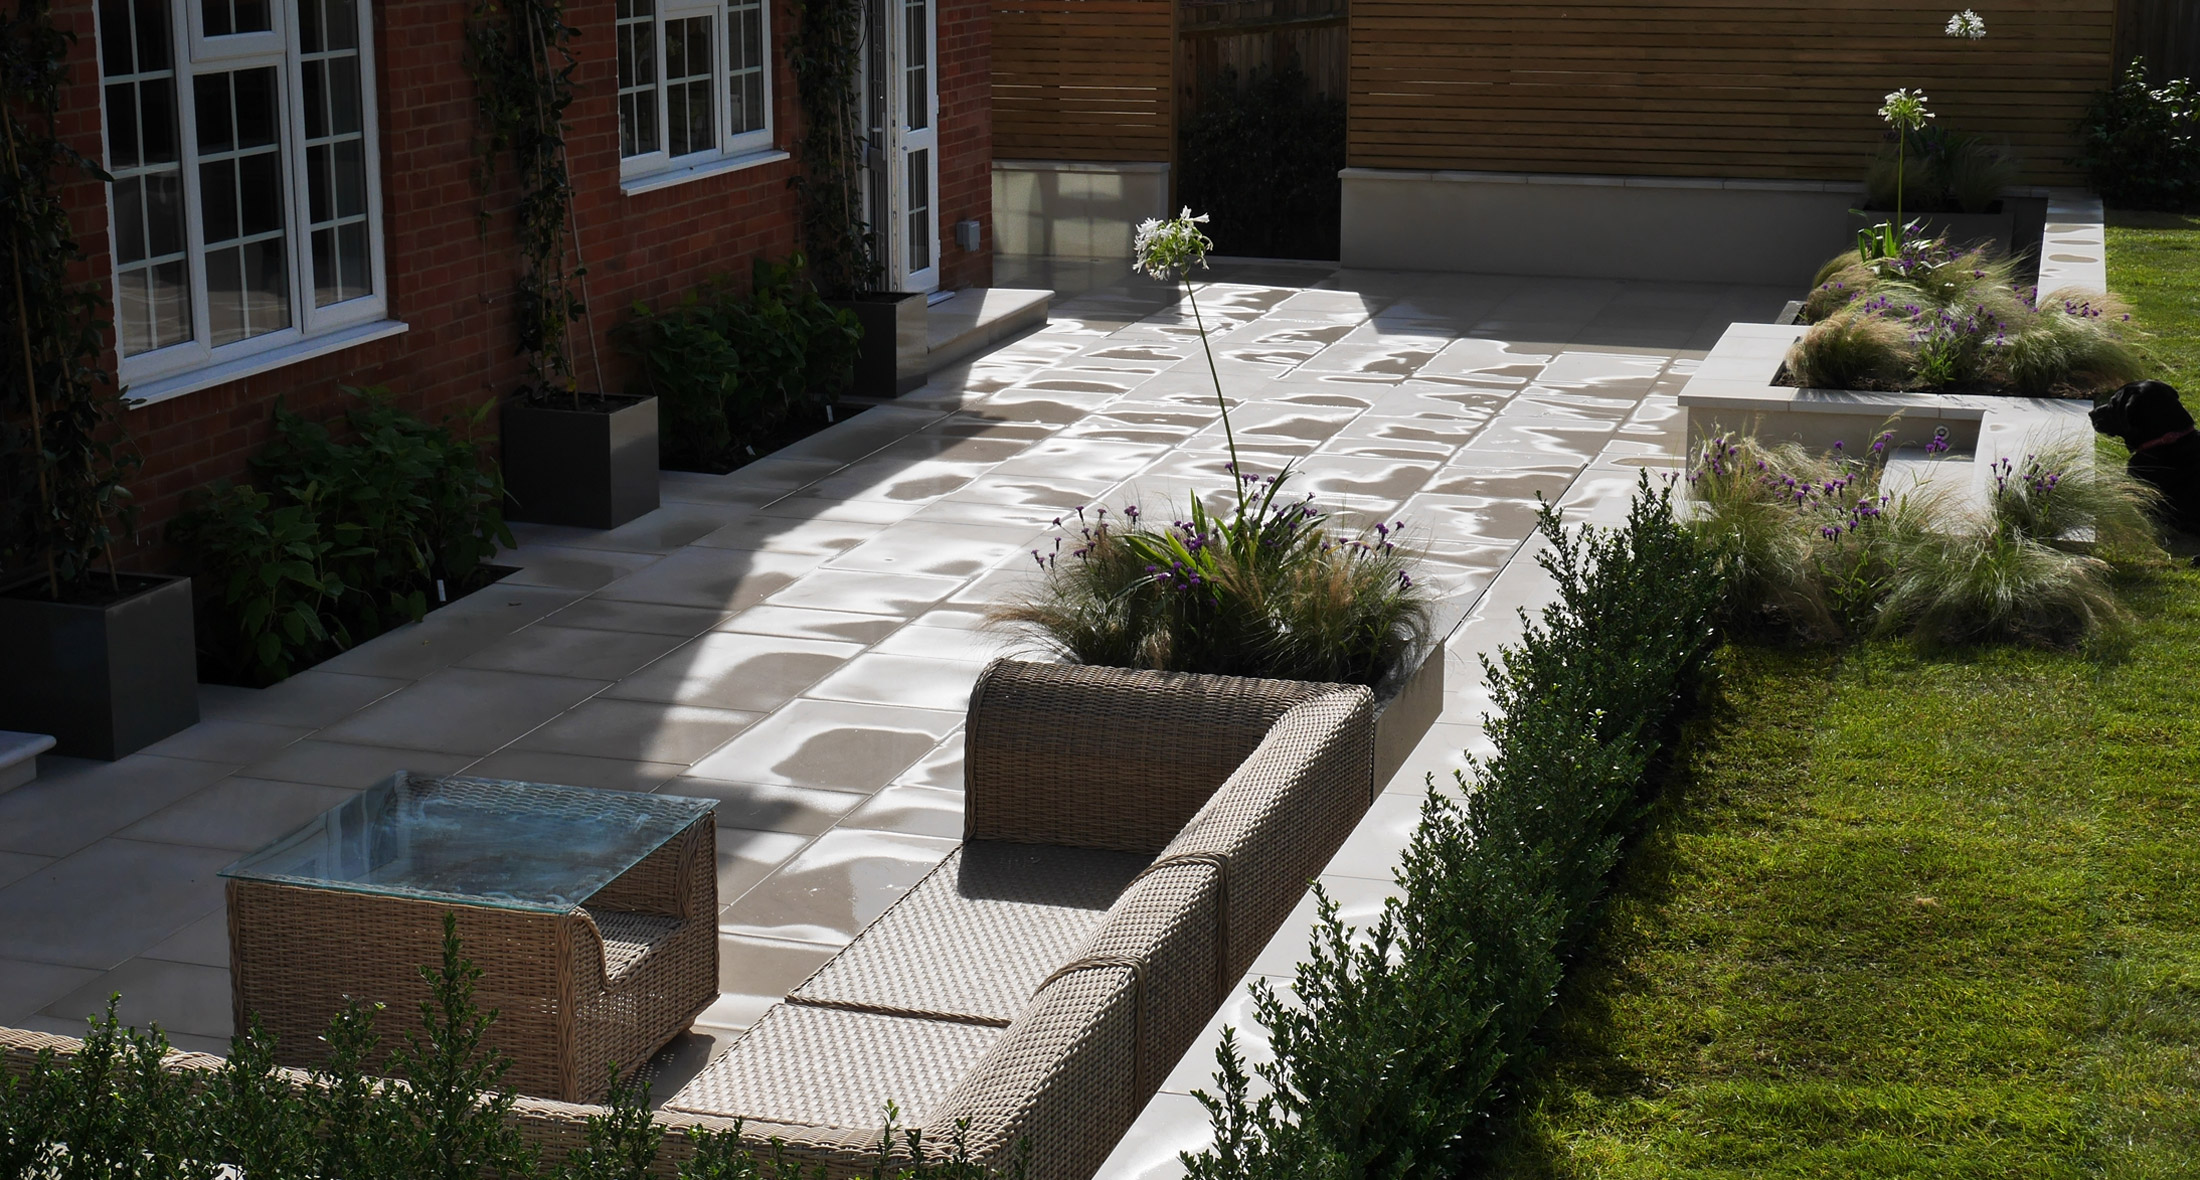 Slate grey garden design landscaping tunbridge wells kent for In the garden landscape and design